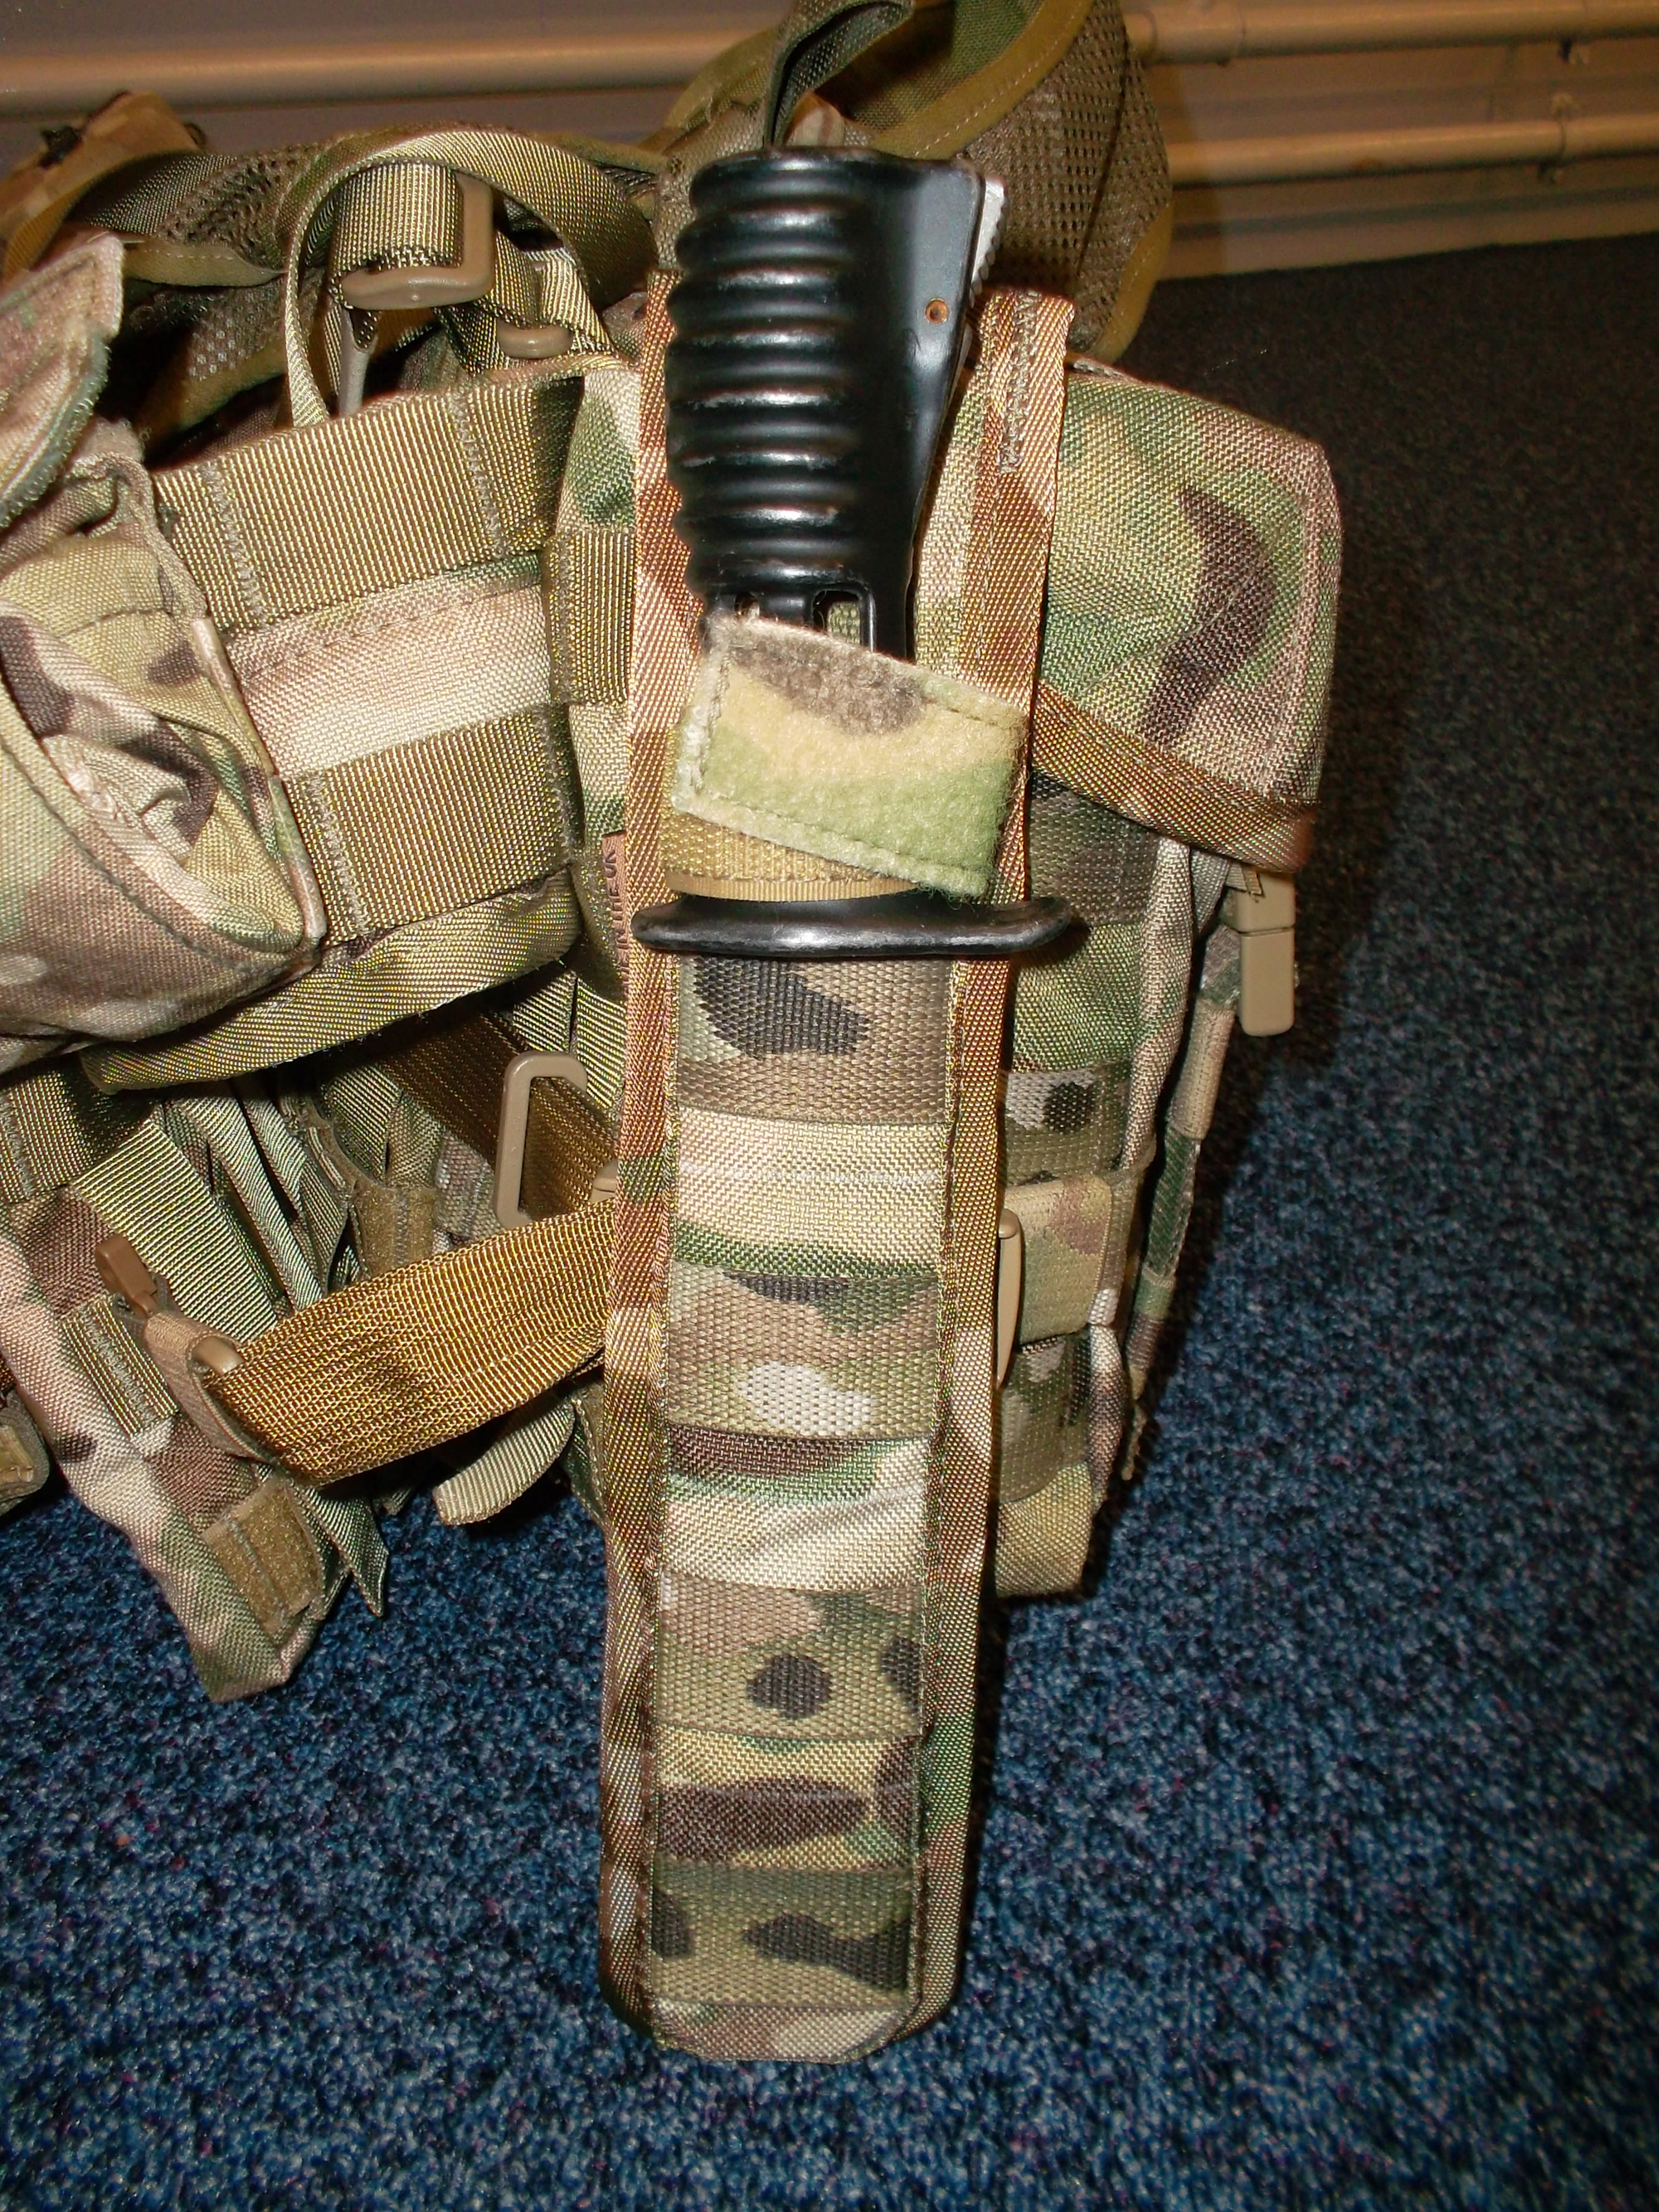 Sheath on side of pouch